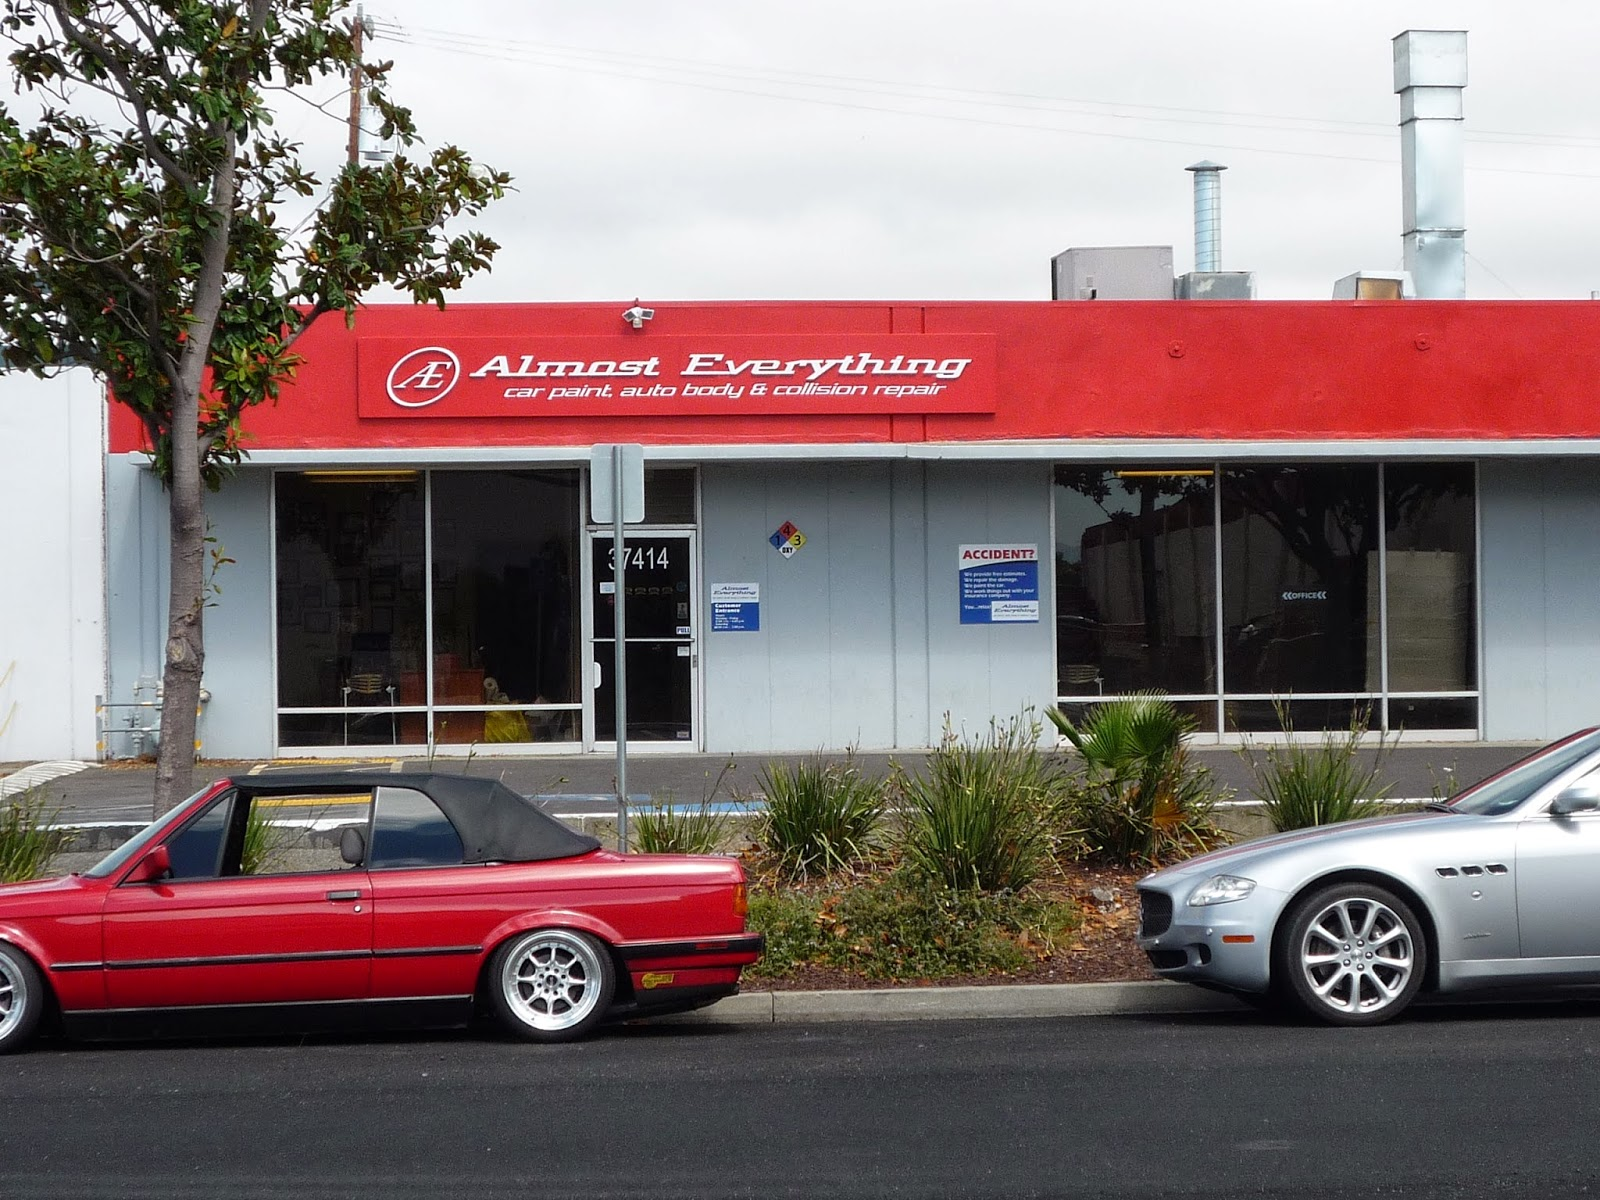 Best Collision Repair in San Francisco Bay Area - Almost Everything Auto Body